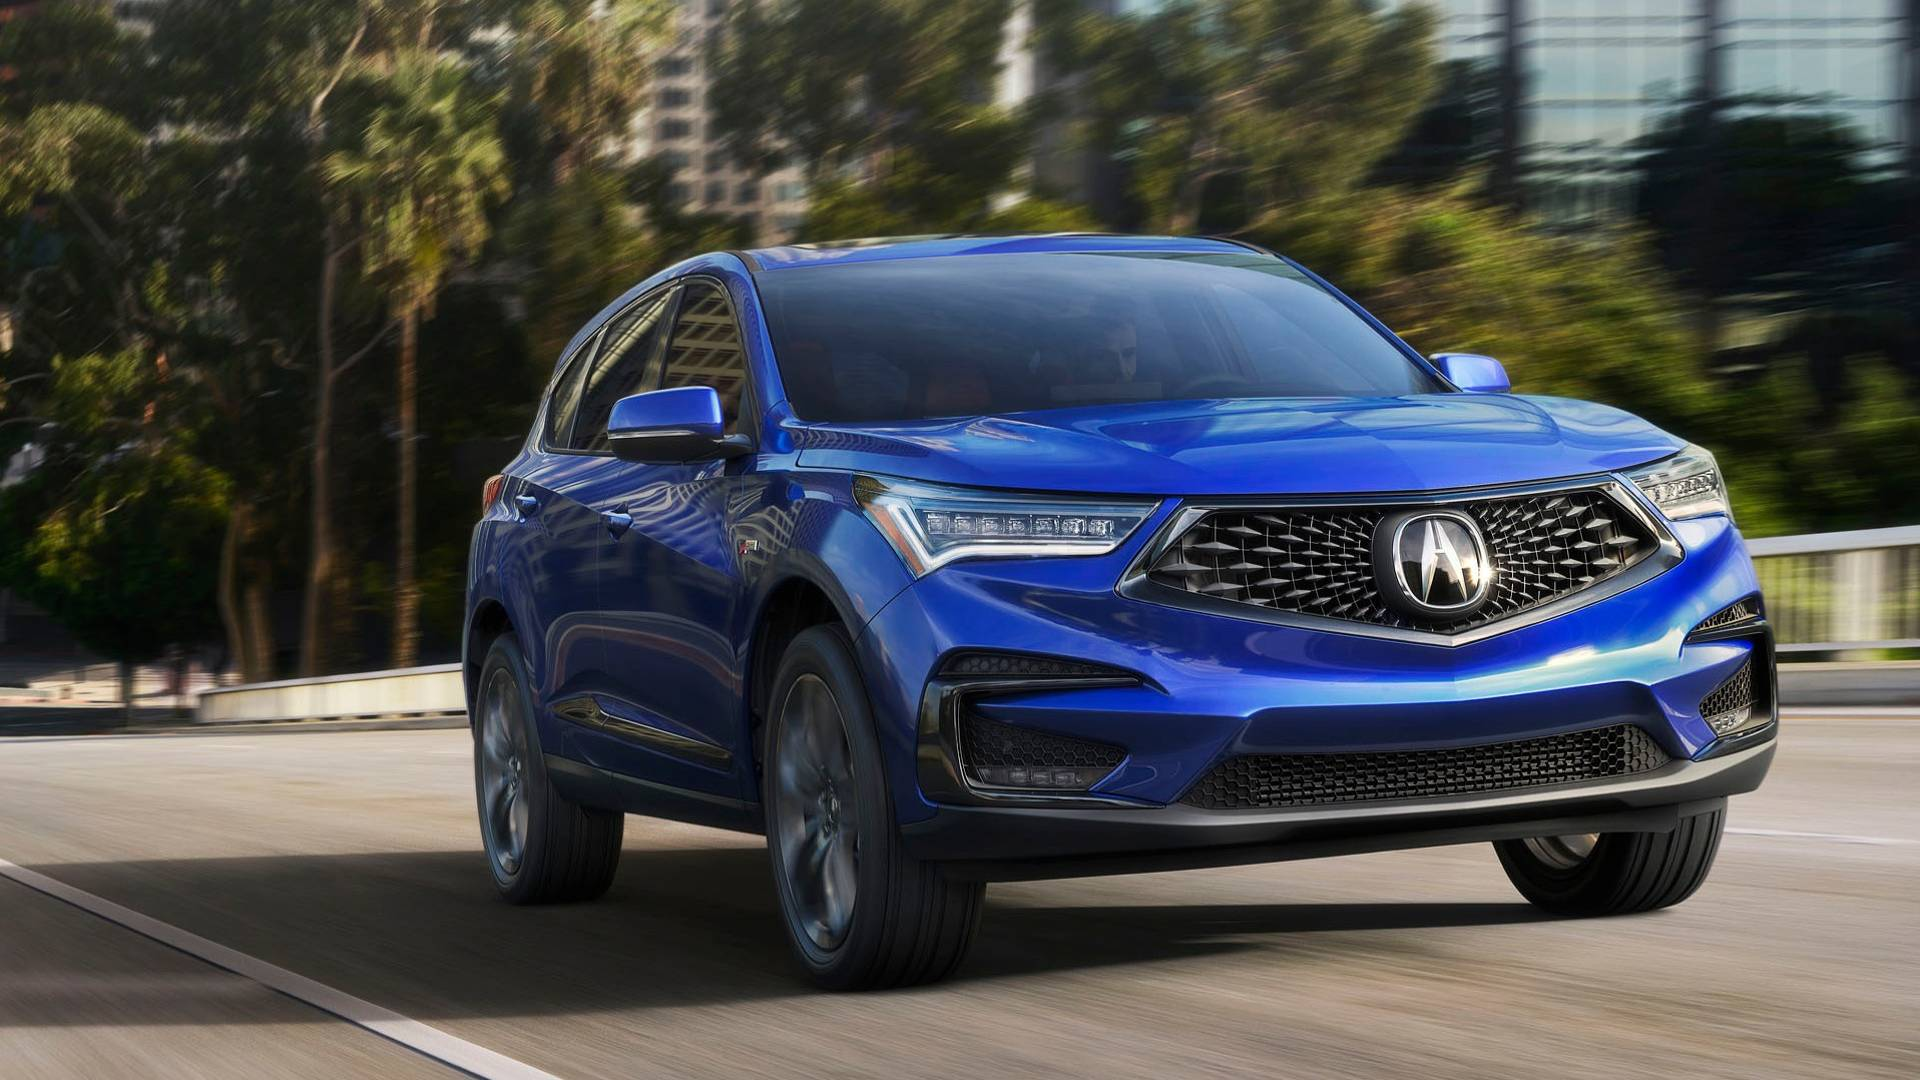 2019 Acura Rdx Starts At 37 300 Cheapest A Spec Asks 43 500